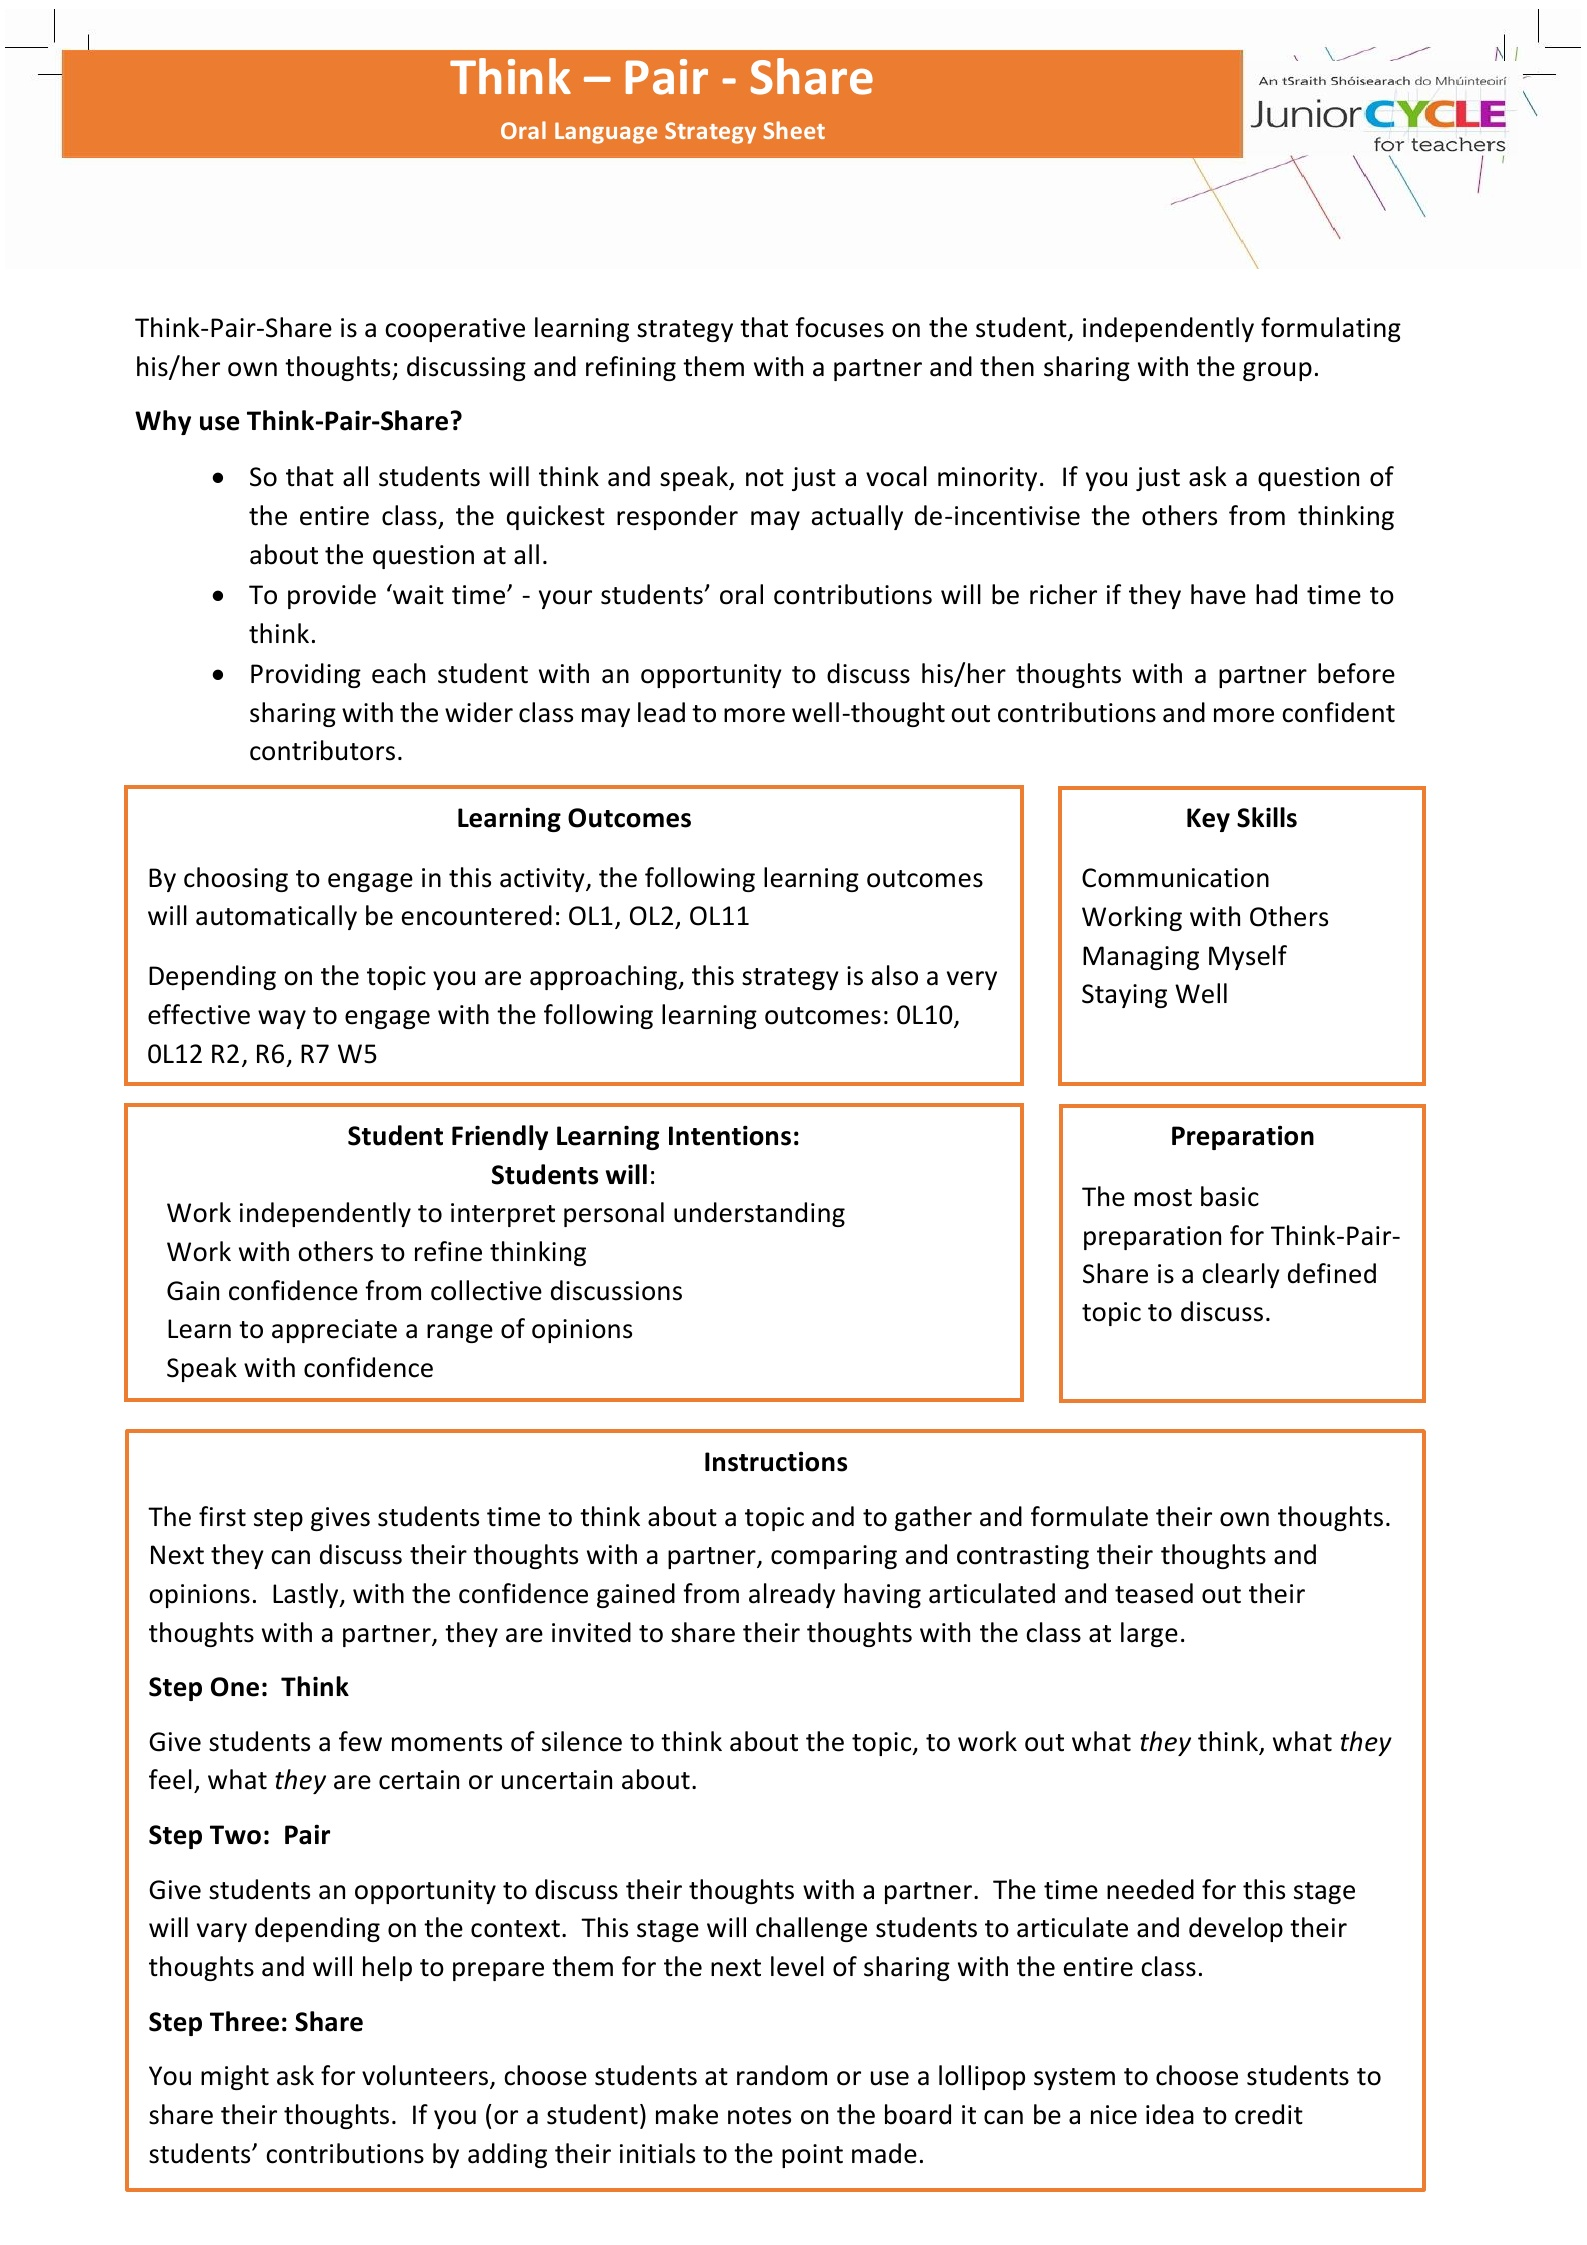 English Resources Oral Language Junior Cycle For Teachers Jct